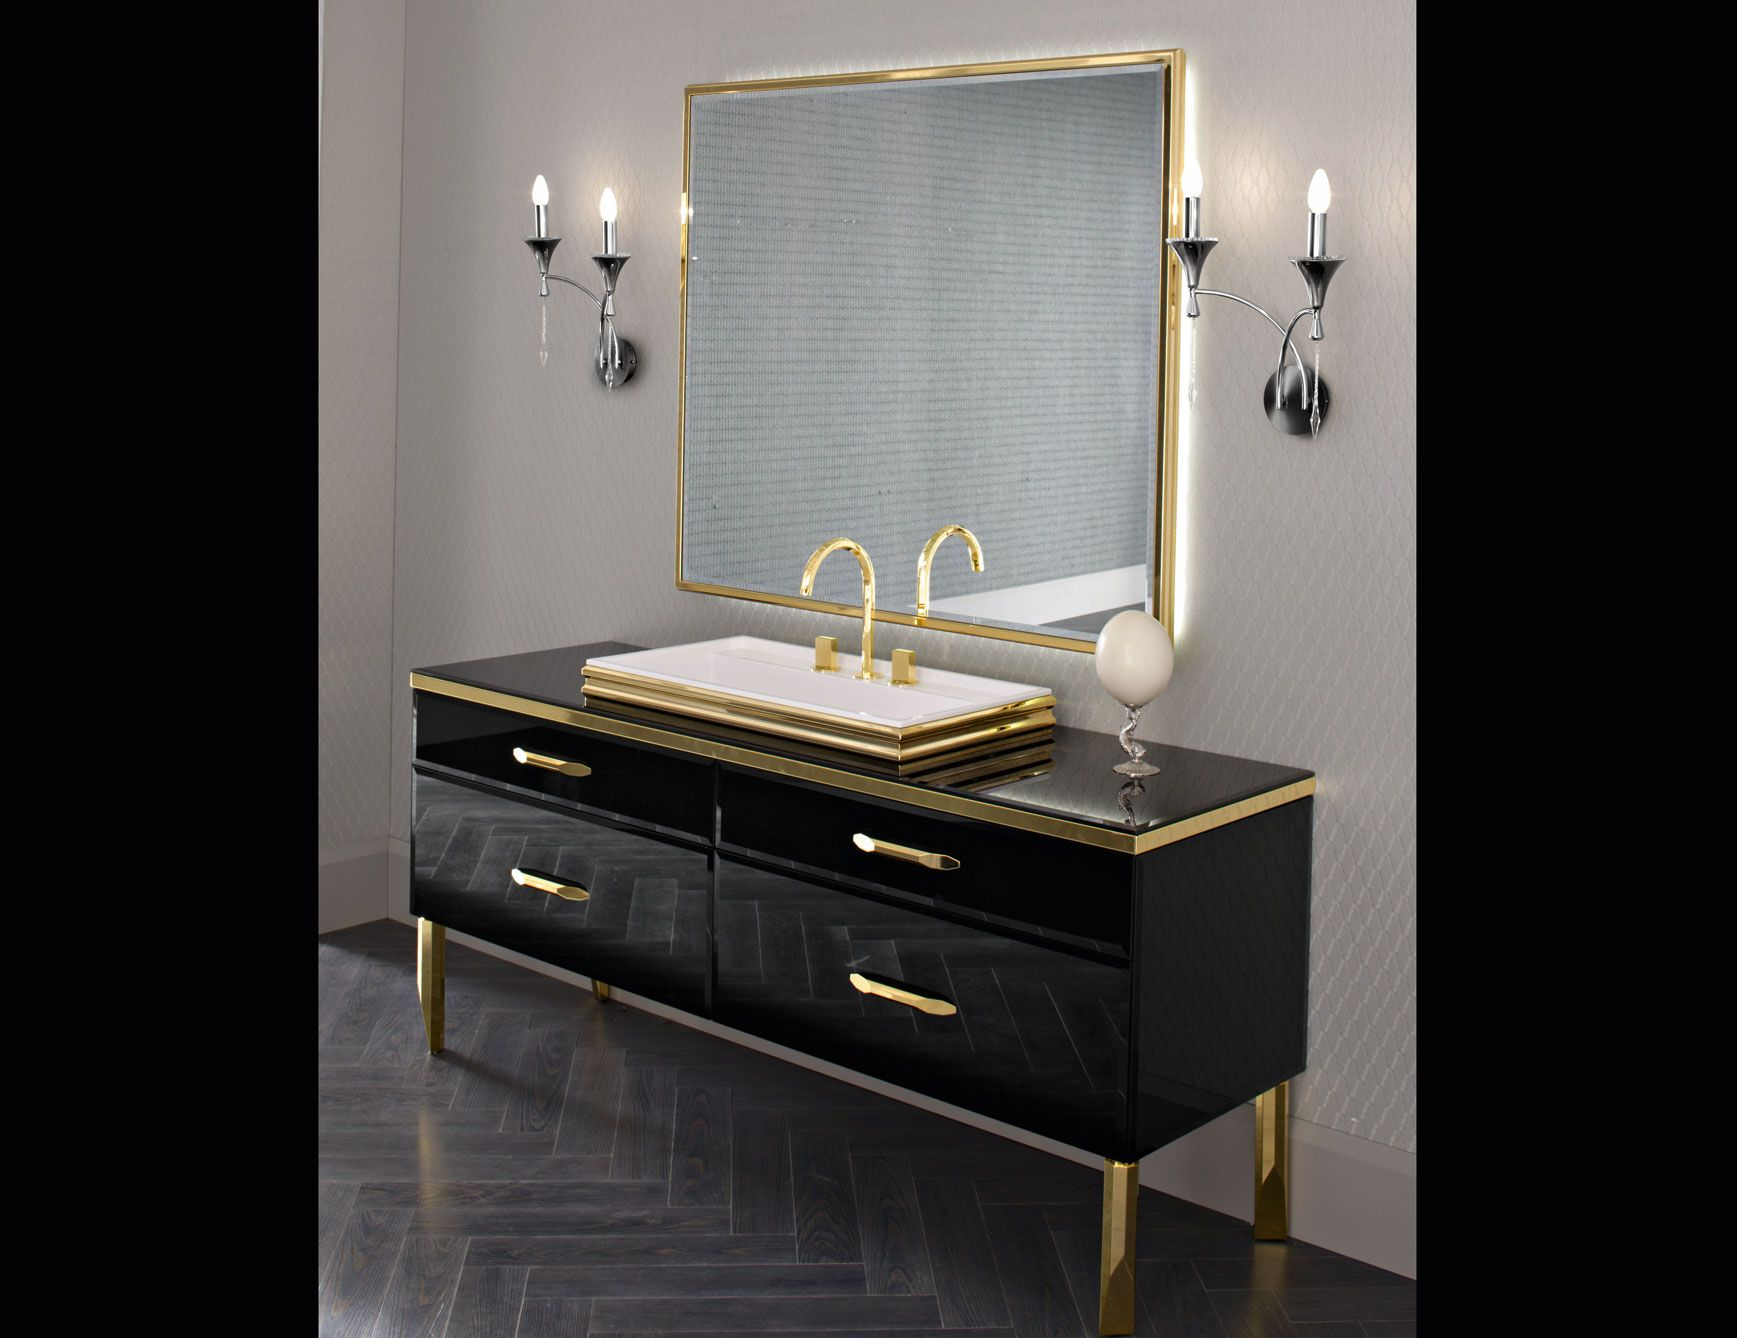 Coolbrilliant The Five Steps Needed For Putting High End Modern Bathroom Vanities